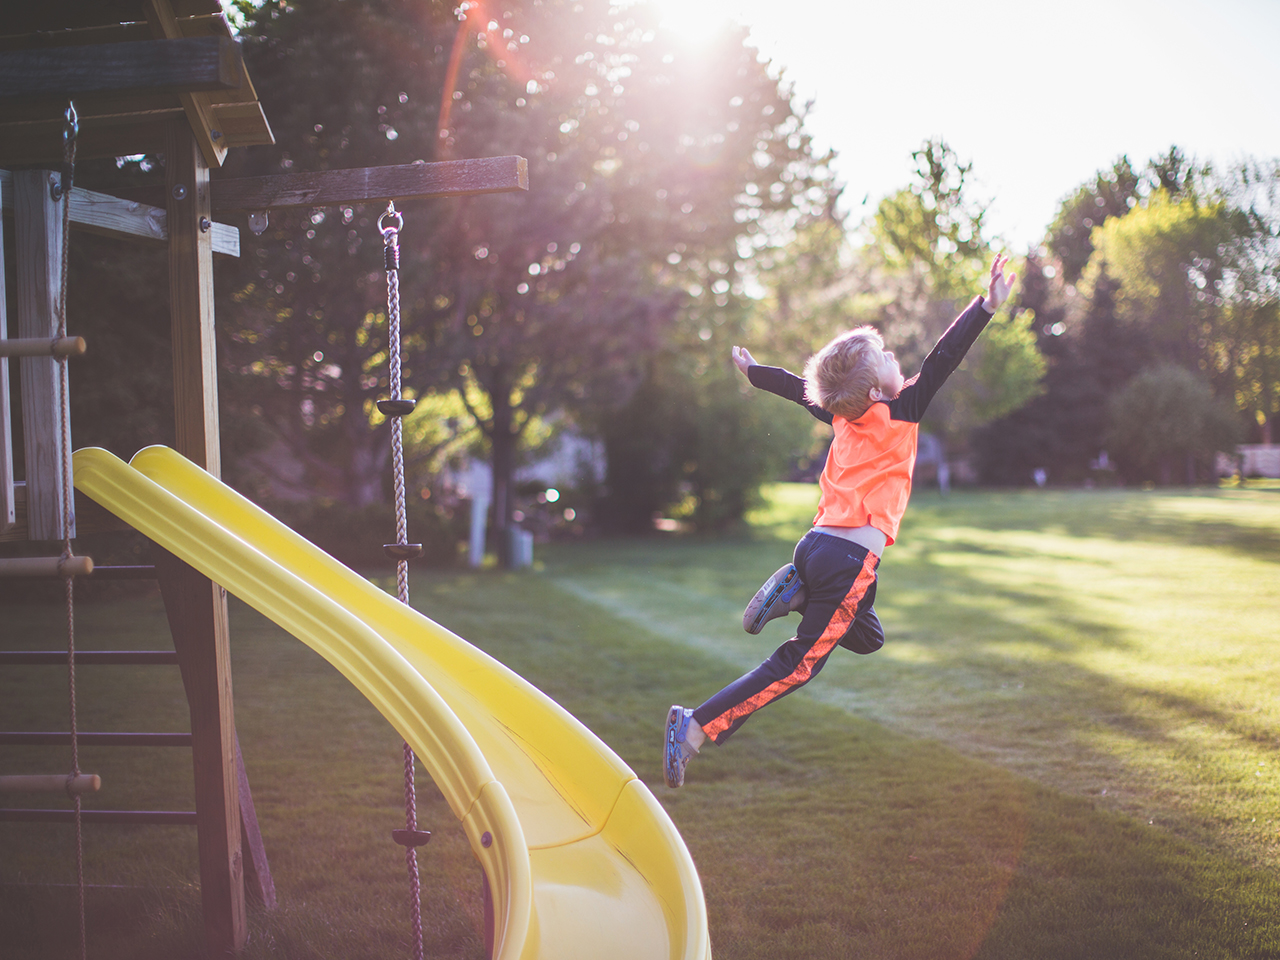 Little boy flies through the air as he jumps off the side of a backyard jungle gym slide onto a sun dappled lawn.